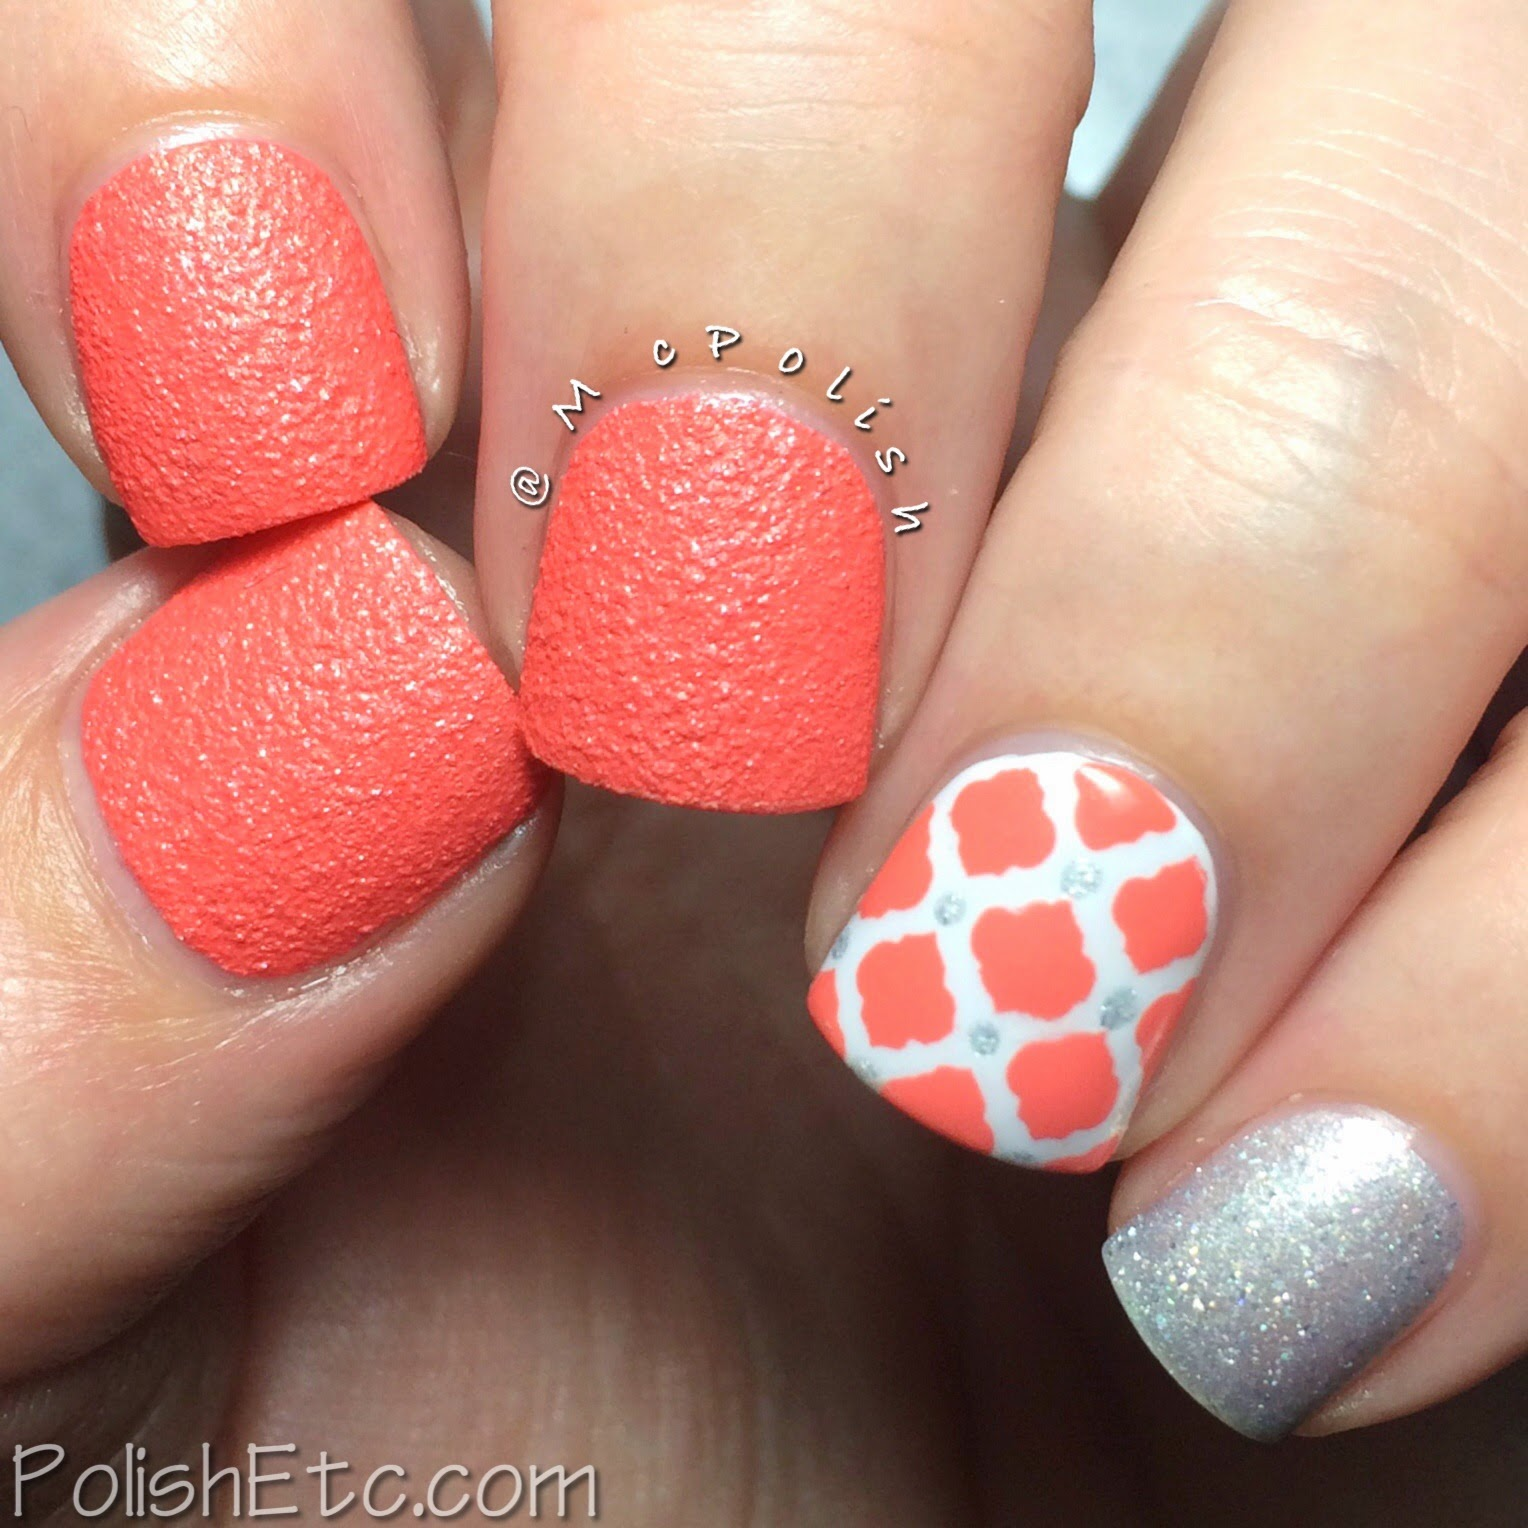 31 Day Nail Art Challenge - #31dc2014 - McPolish - INSPIRED BY A COLOR